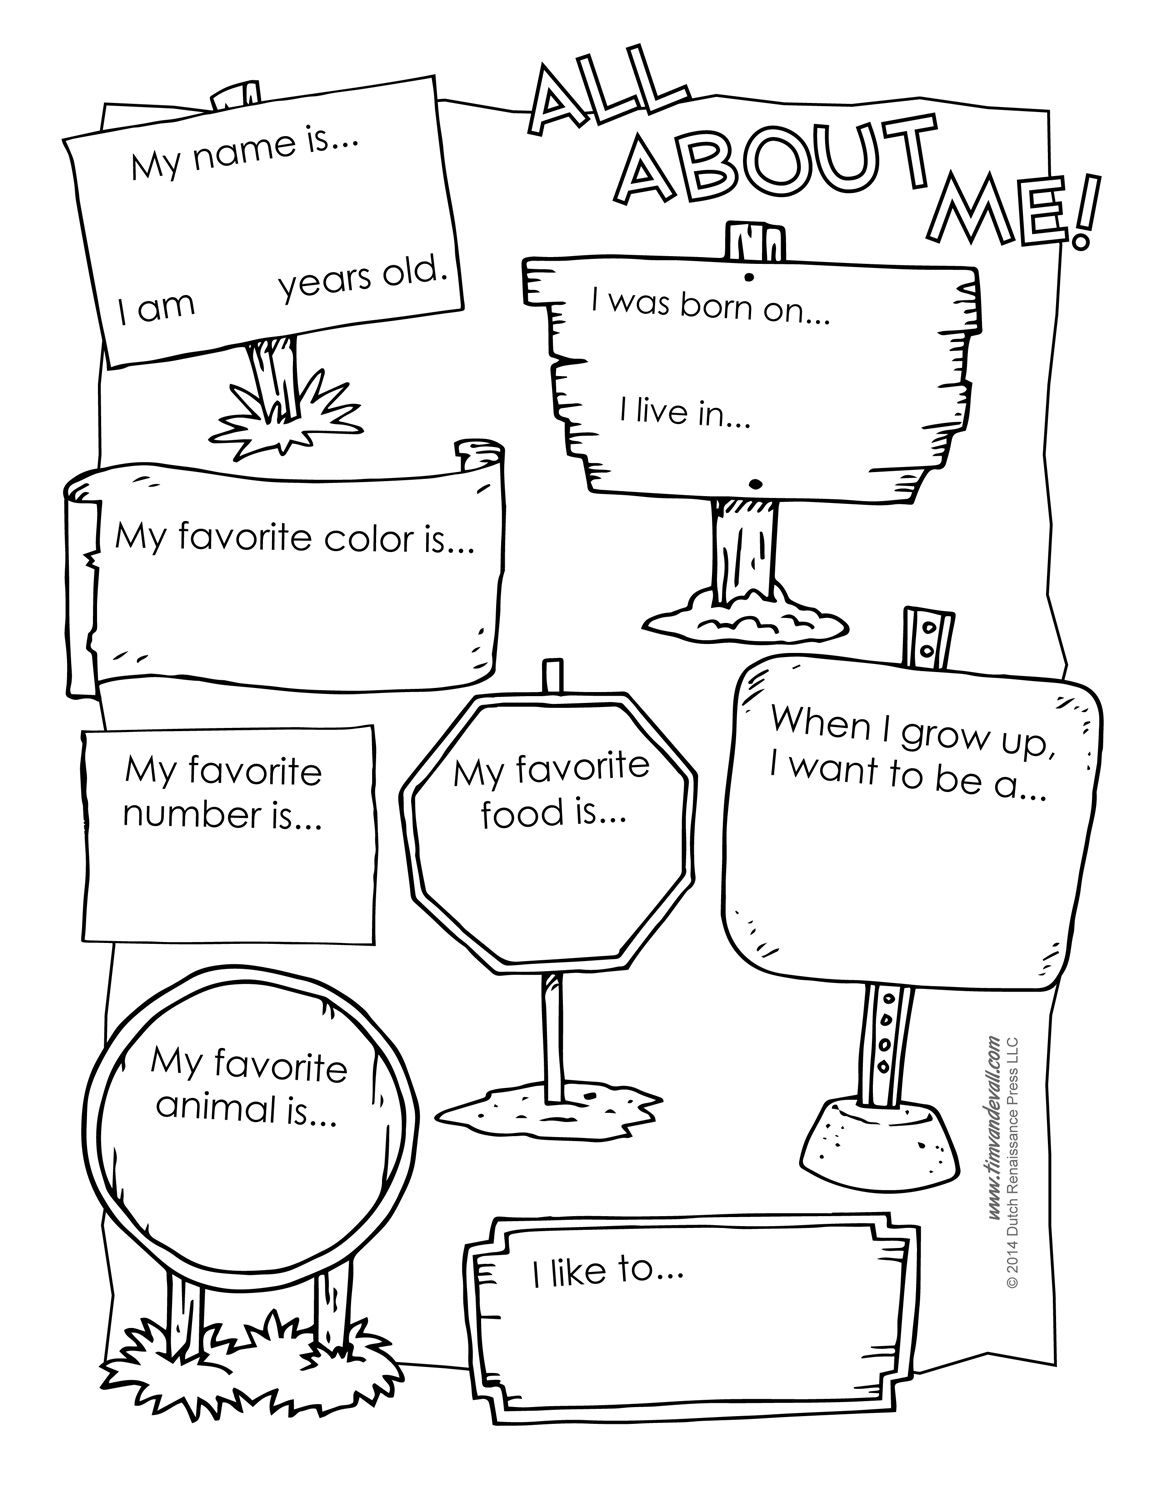 image relating to All About Me Printable Worksheets named all pertaining to me preschool template 6 Ideal Illustrations or photos of All Above